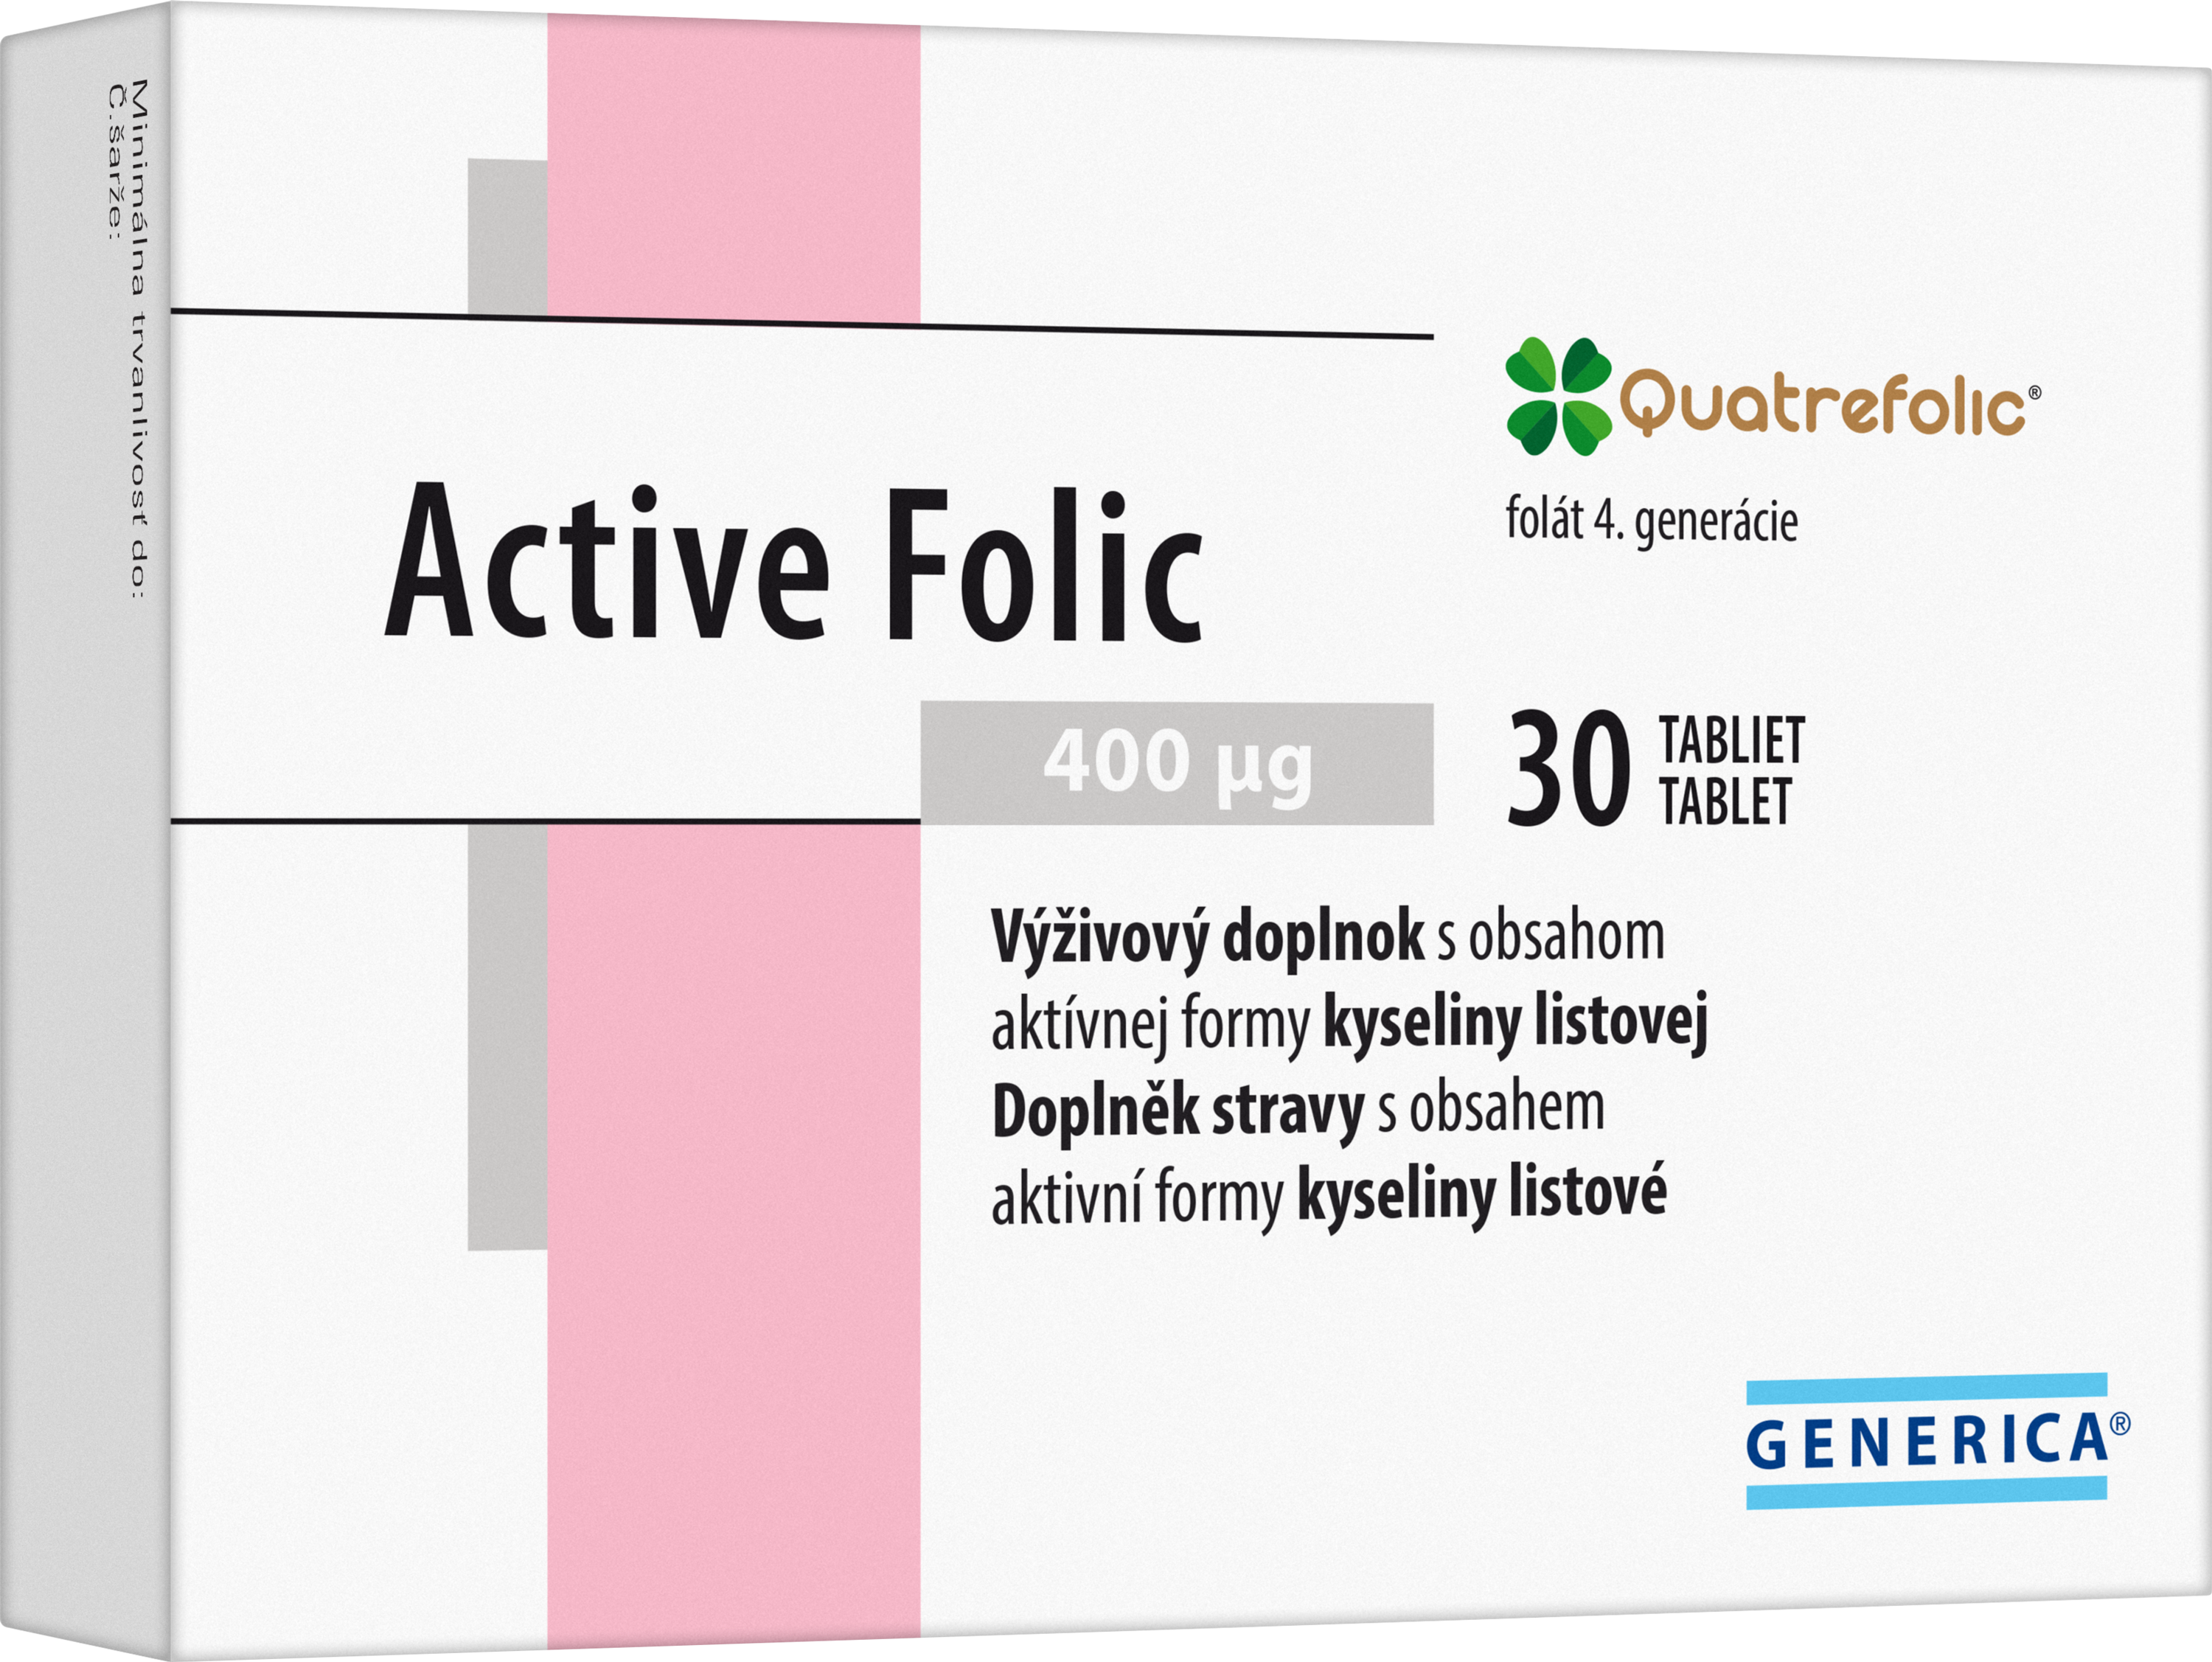 https://www.generica.sk/wp-content/uploads/2017/05/active_folic.png